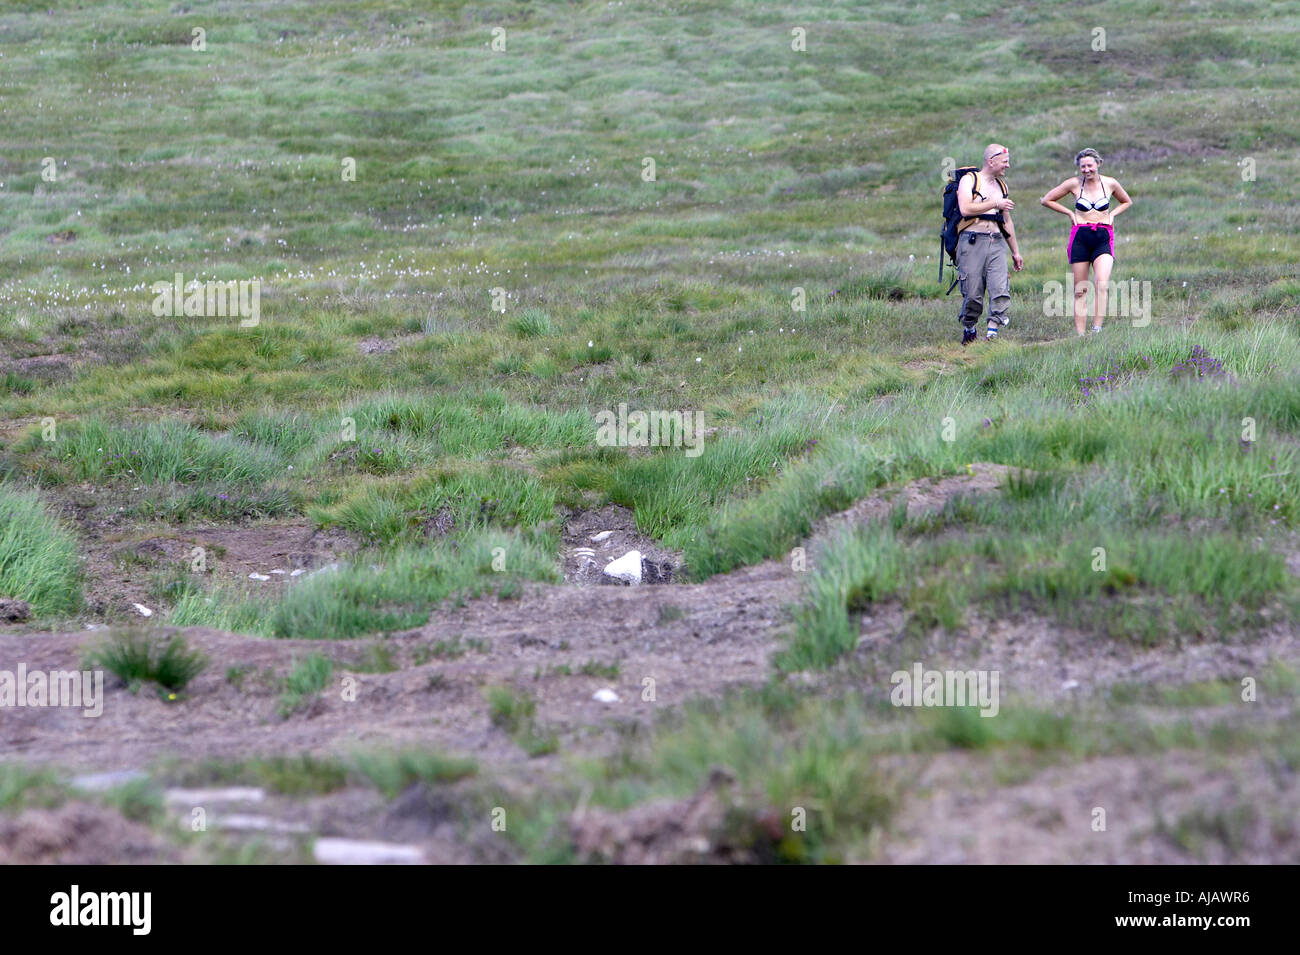 summer male and female climbers walking through peat bog at base of Errigal mountain donegals highest peak - Stock Image